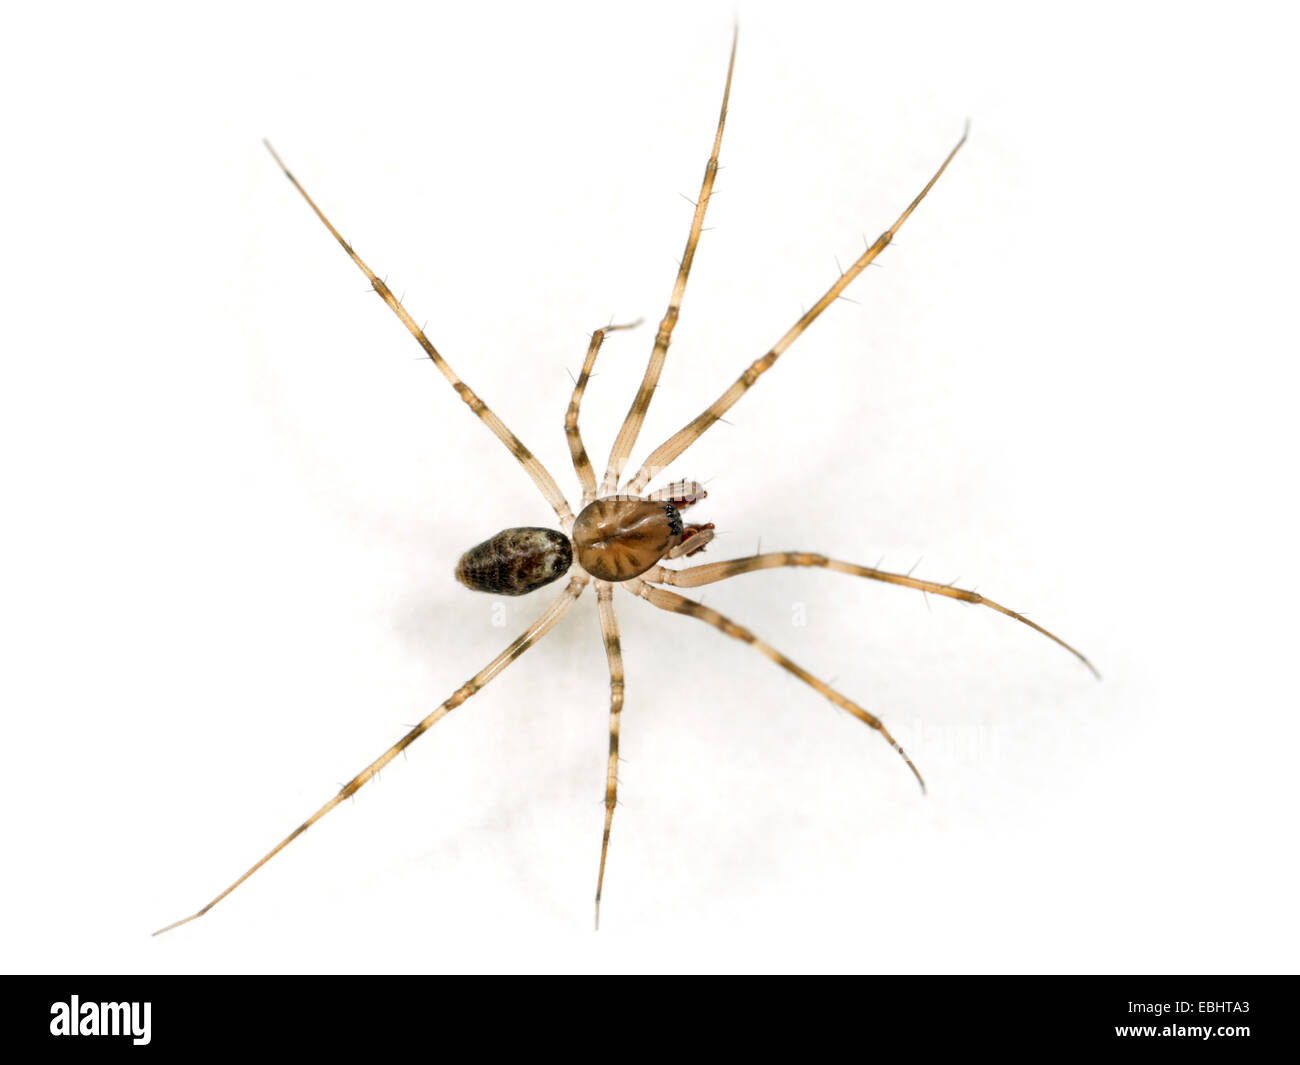 A male Invisible spider (Drapetisca socialis), on white background. It gets its name from beeing hard to spot on Stock Photo